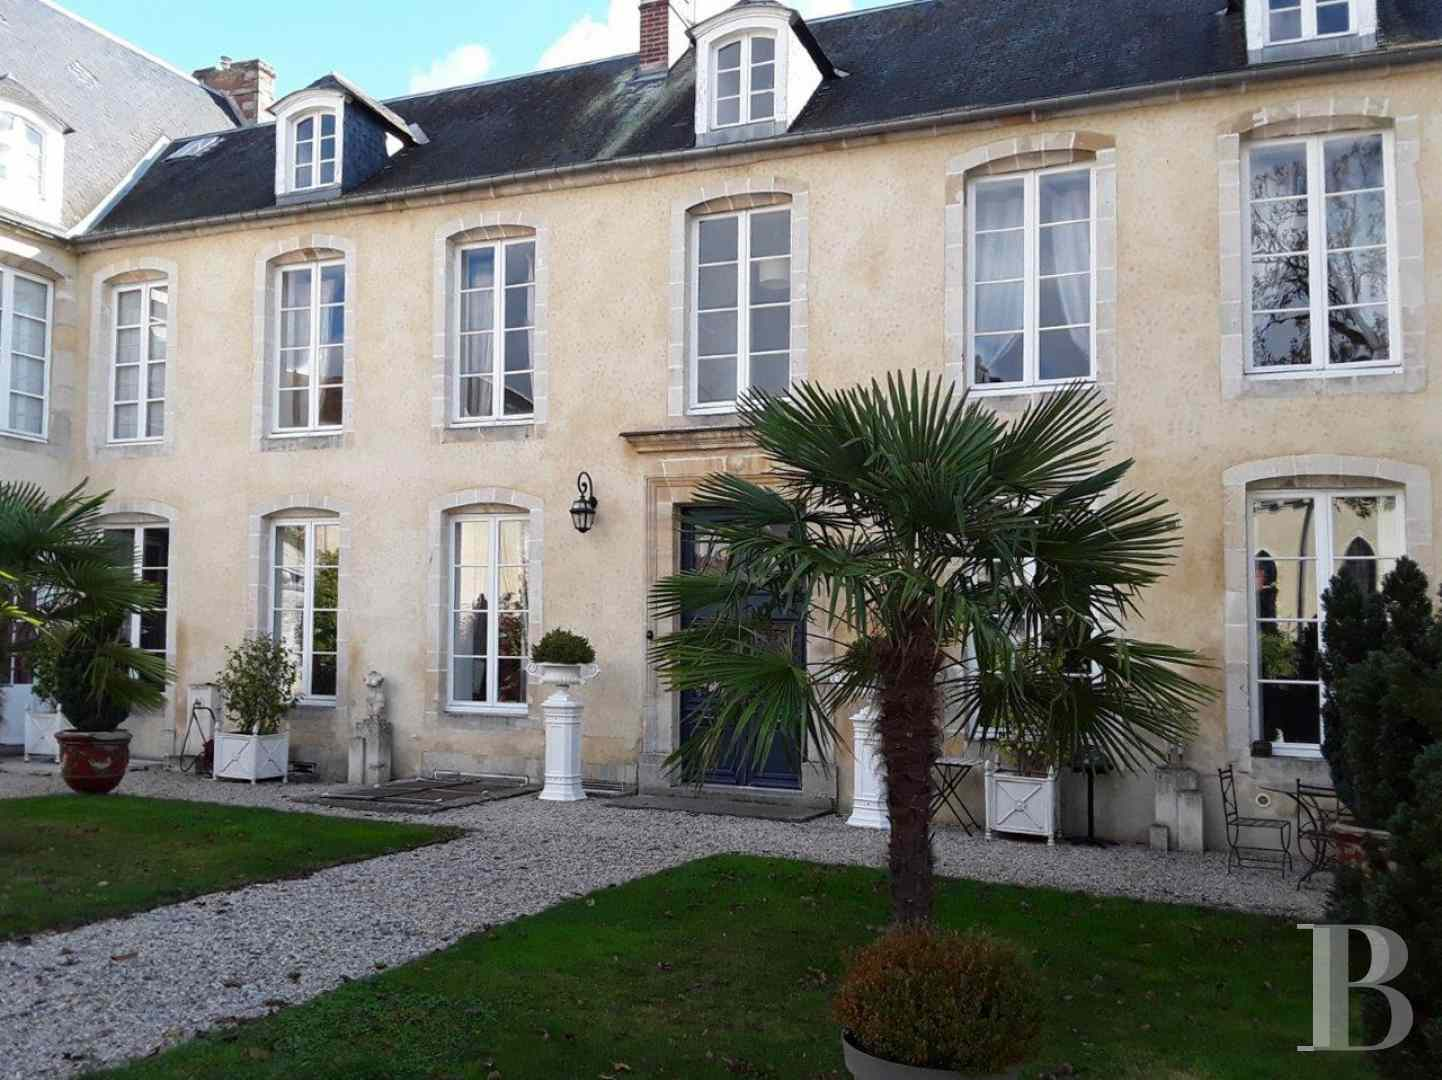 mansion houses for sale France lower normandy mansion houses - 2 zoom